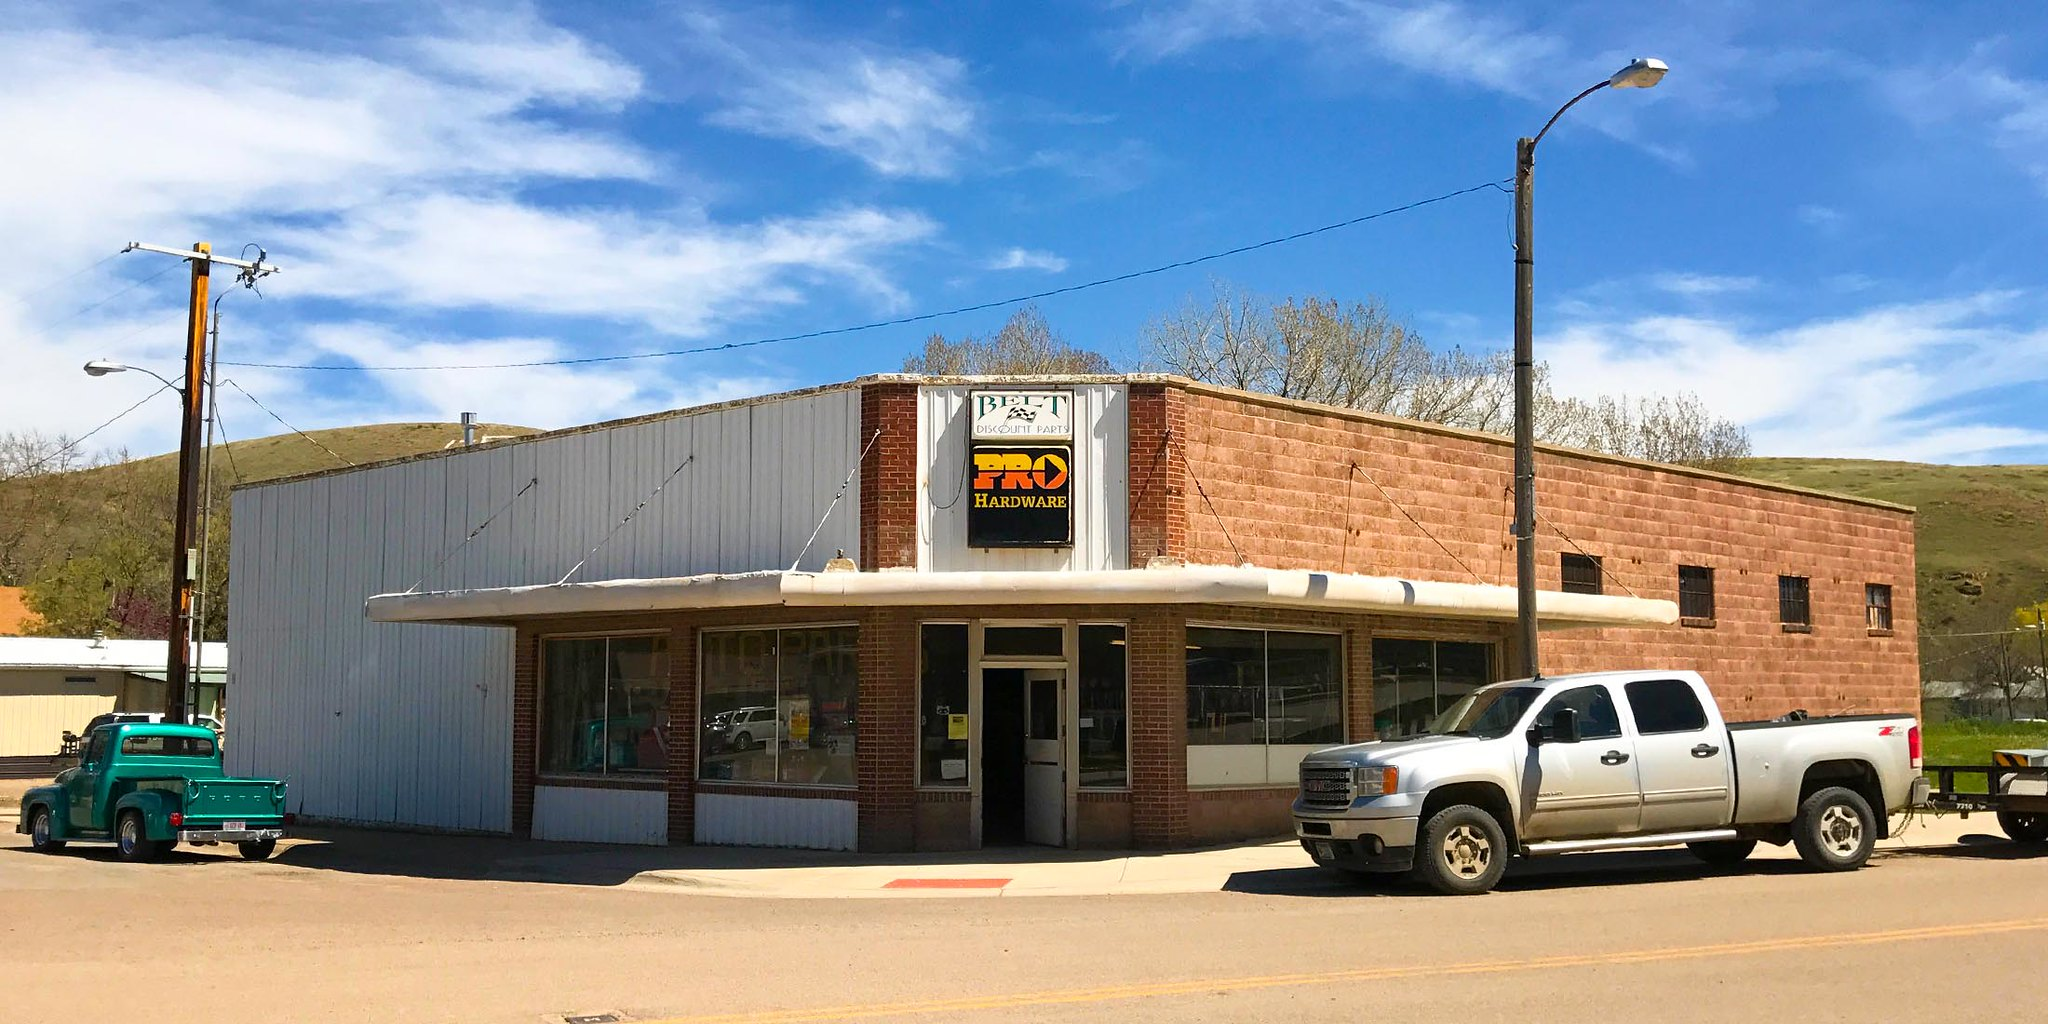 Hardware store located in Belt, Montana in Cascade County.